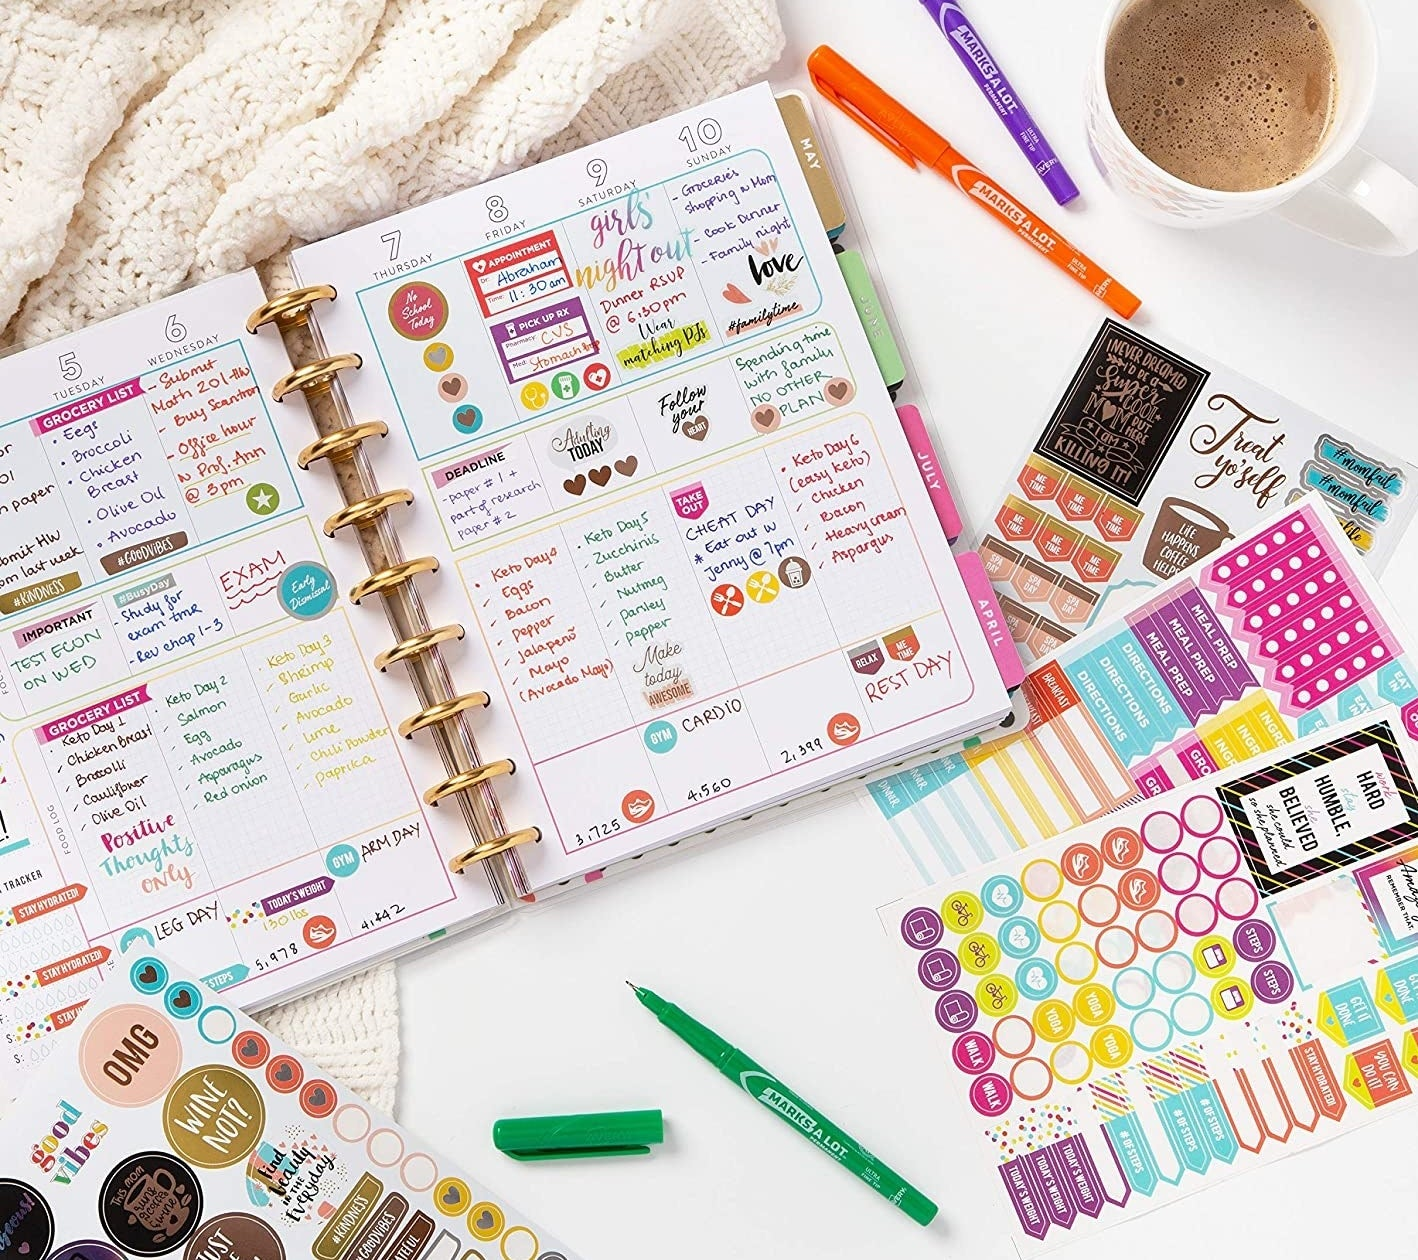 An agenda covered in planner stickers with extra sheets of planner stickers next to it